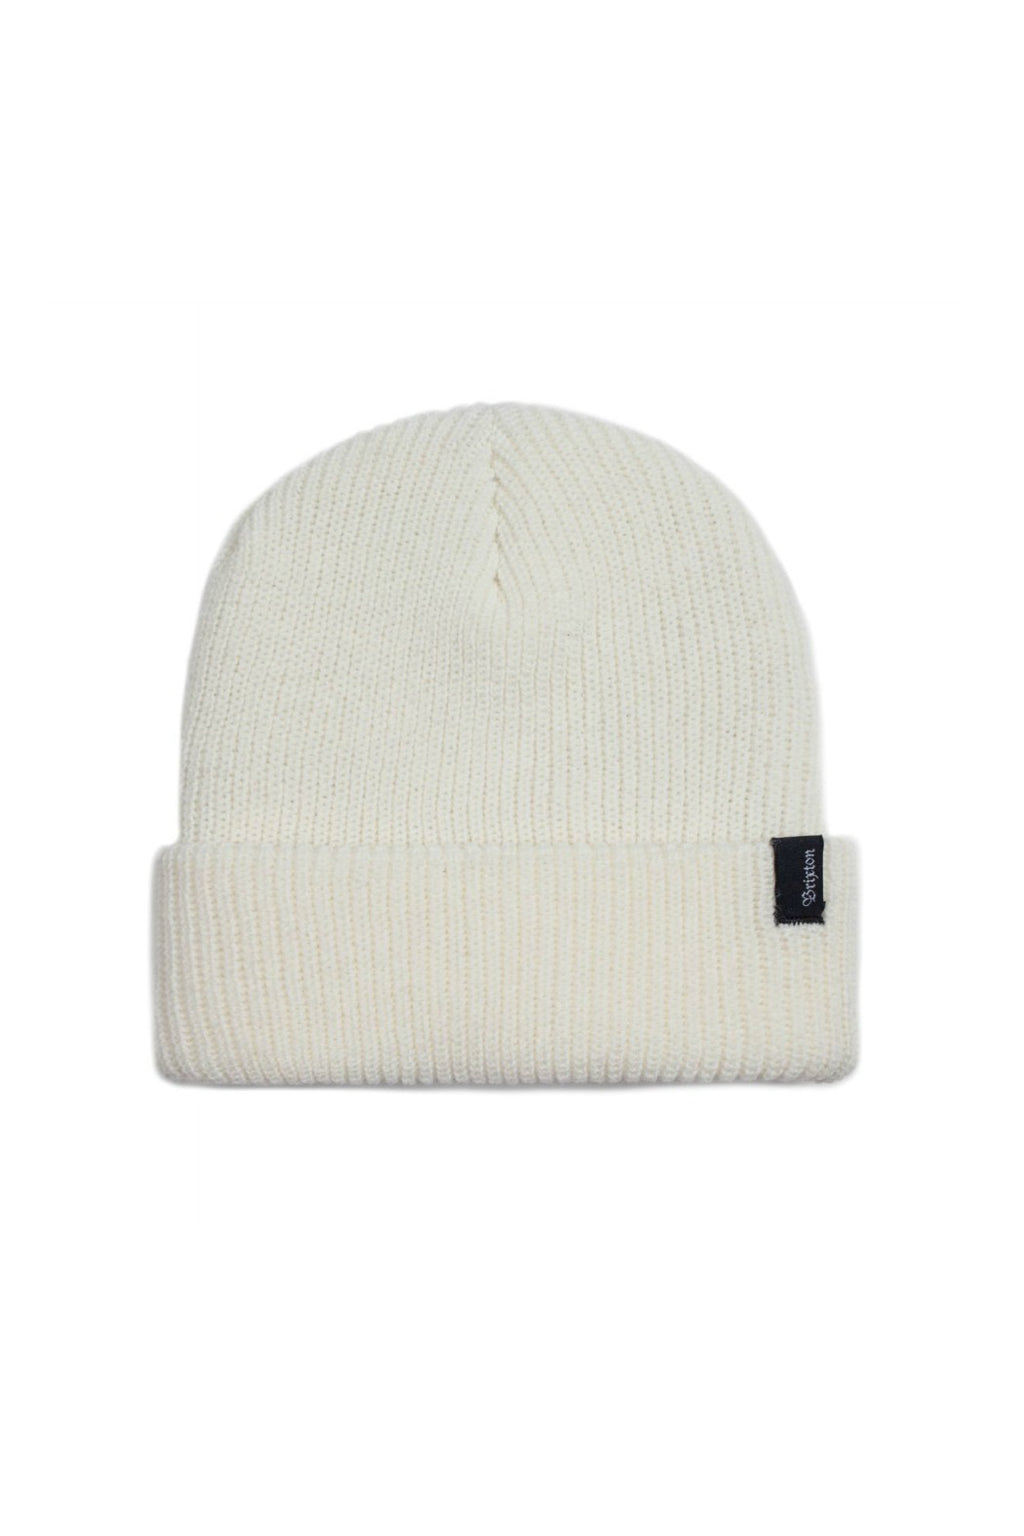 Brixton Heist Beanie in Off White